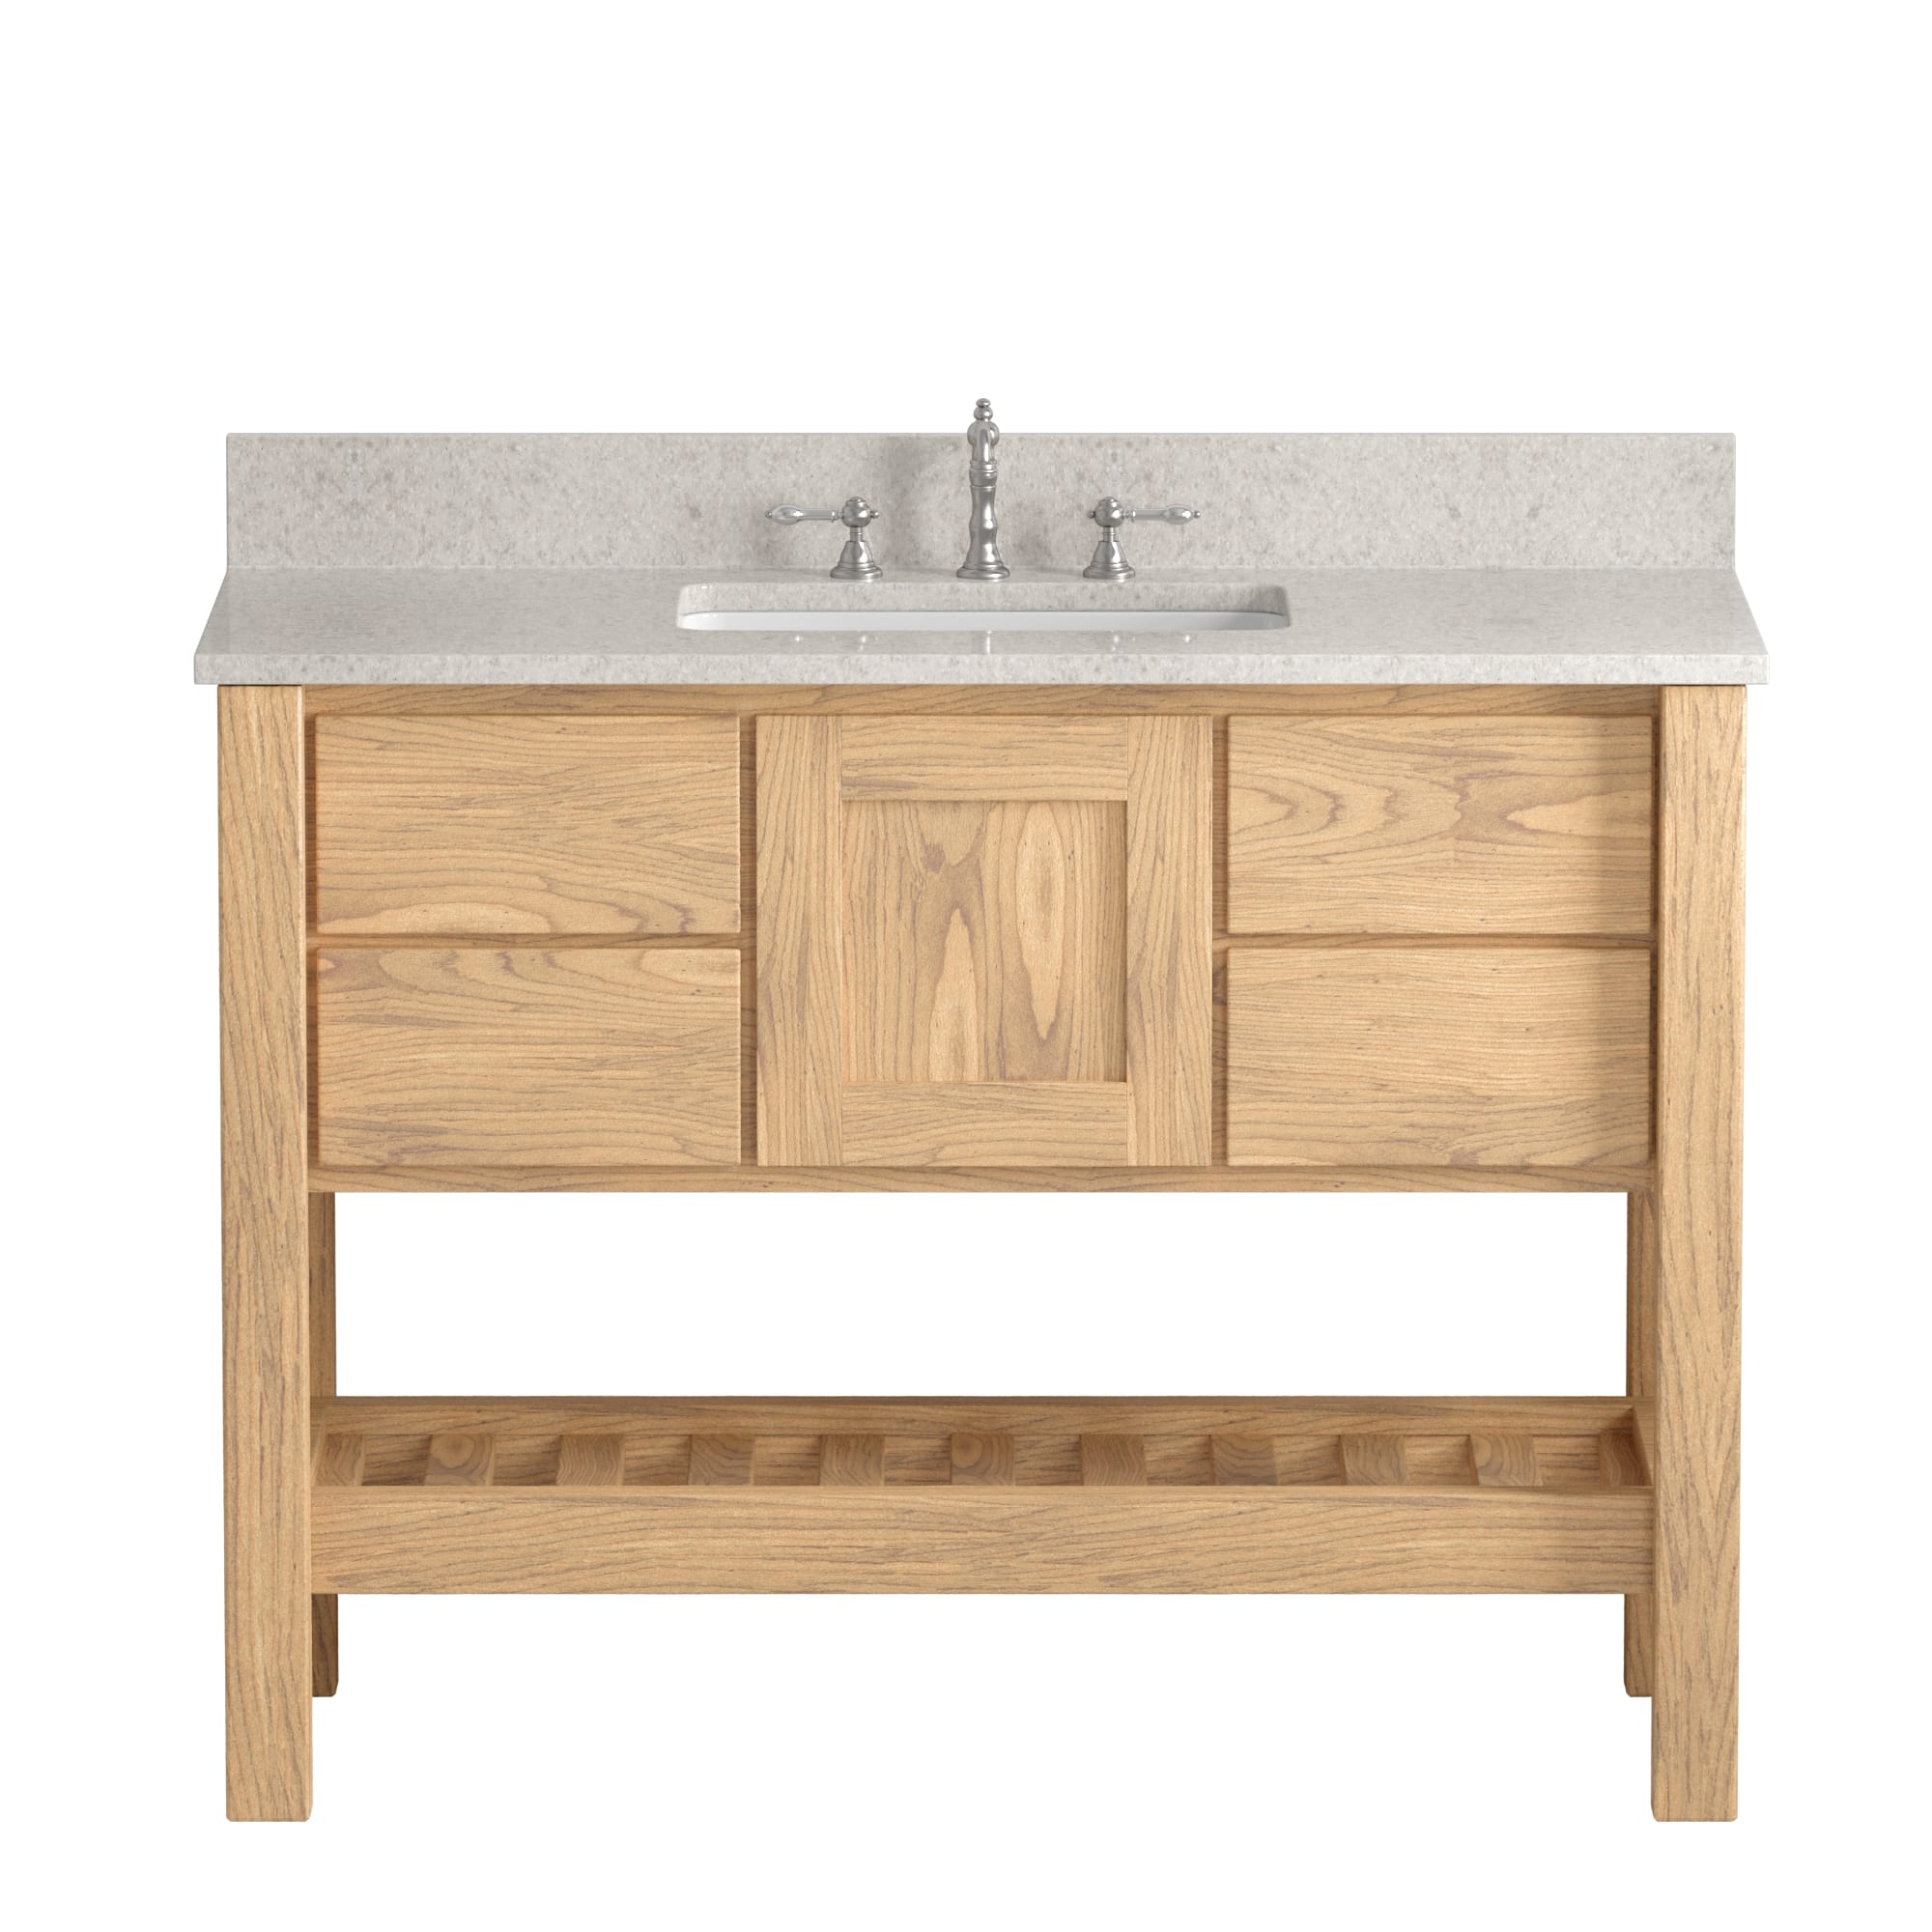 """Made in USA, 48"""" Natural Wood Solid Wood and Basin Sink Vanity with Countertop Options"""